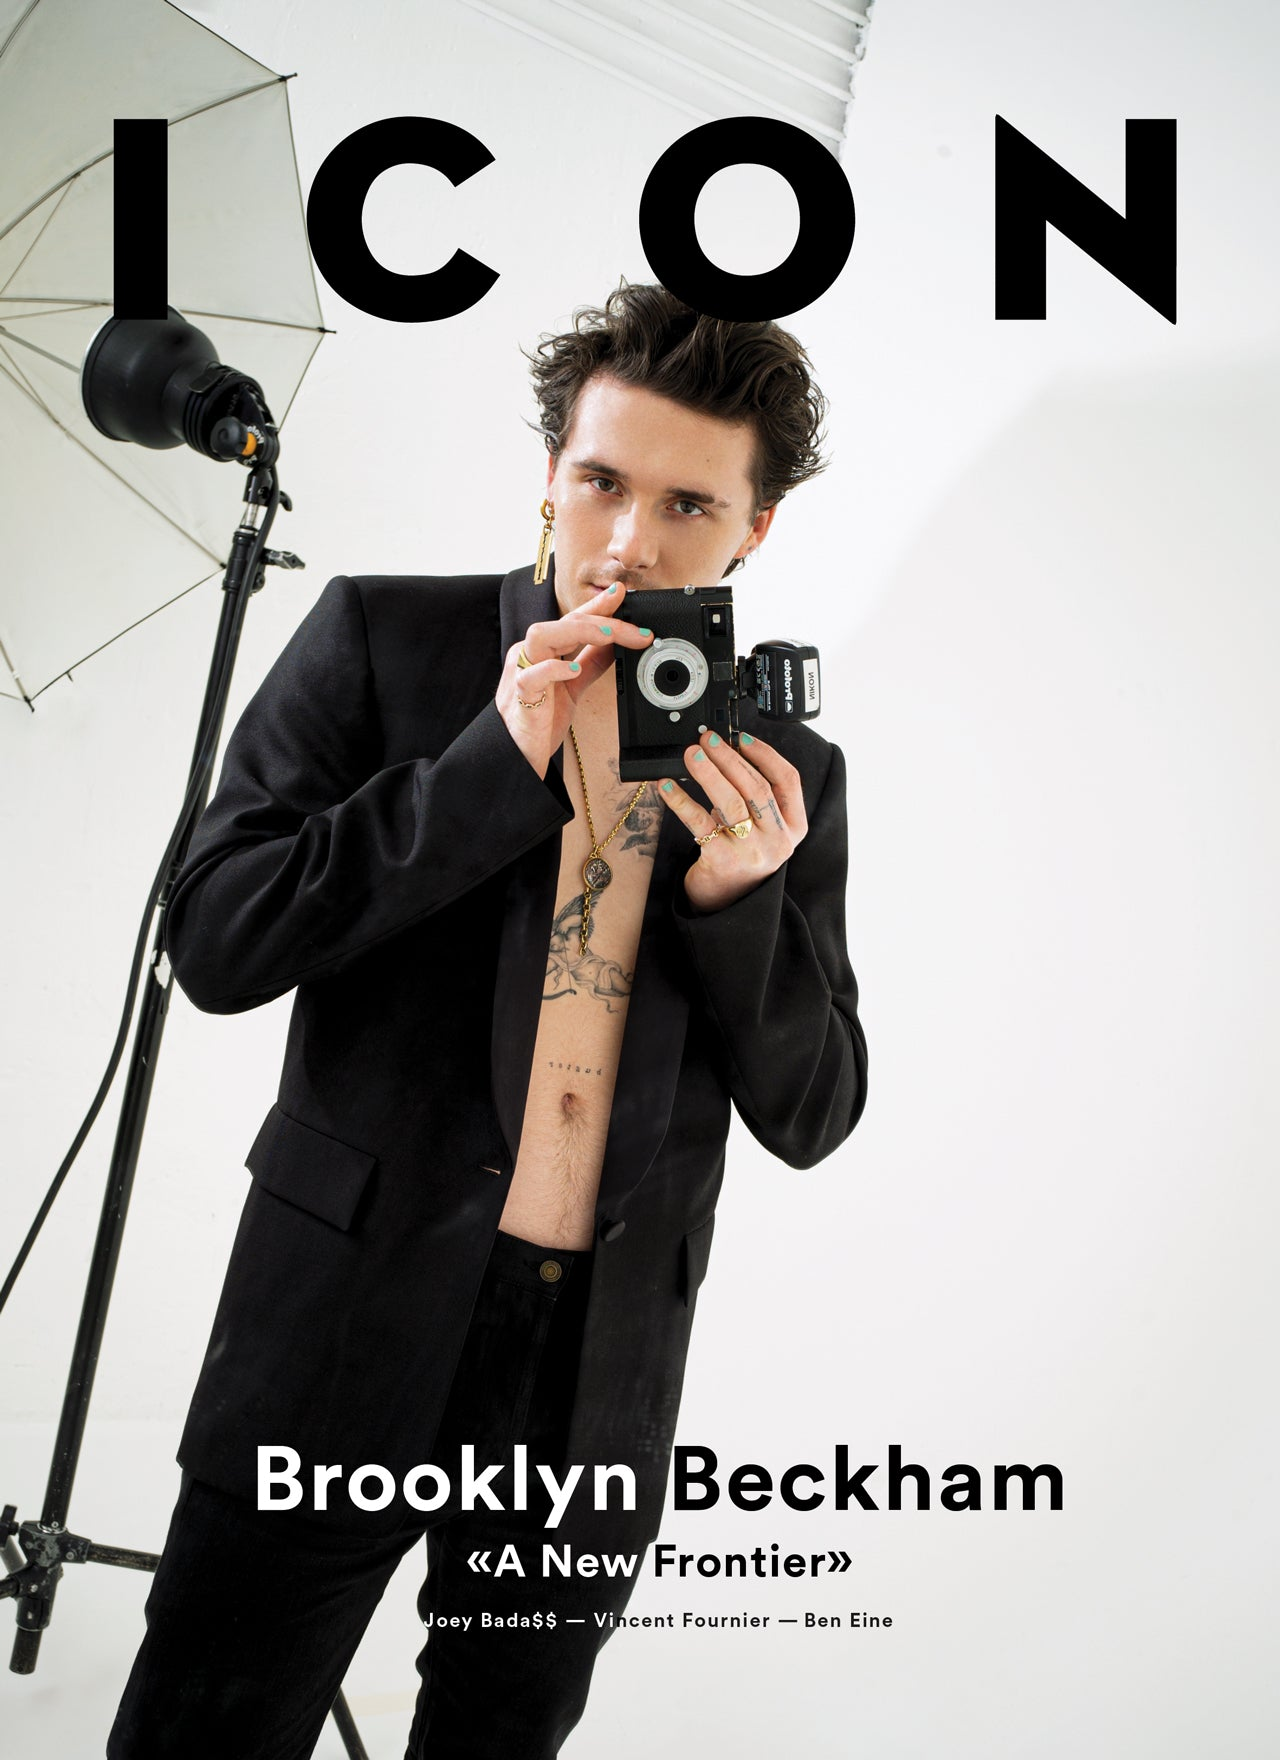 ICON 04 Magazine - A New Frontier - Brooklyn Beckham